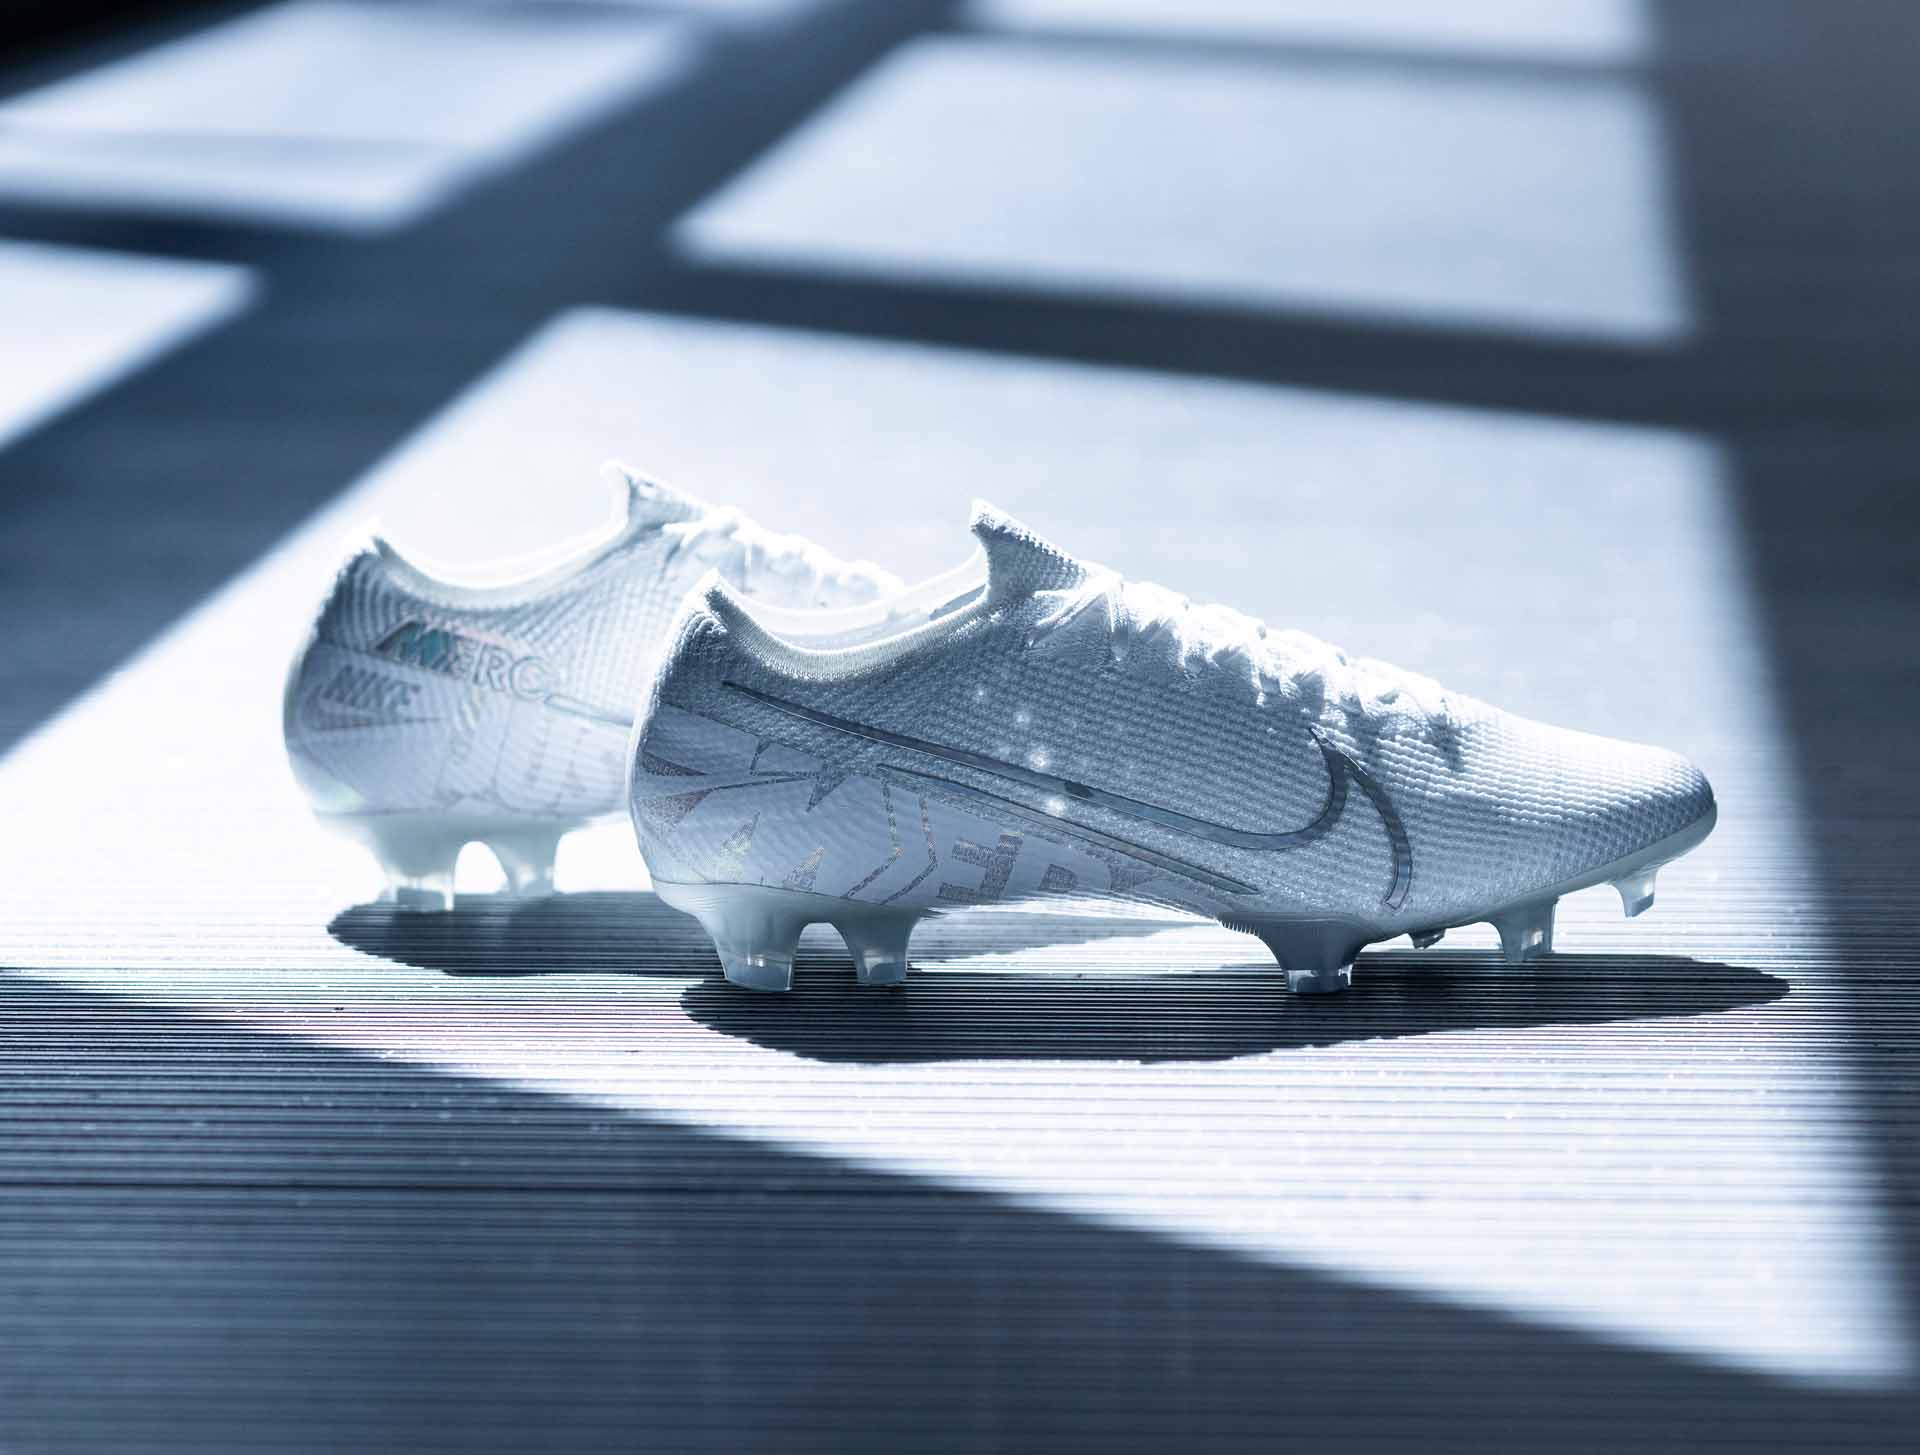 plus récent 87a0d d2c62 Nike Launch The 'Nuovo White Pack' Football Boots - SoccerBible